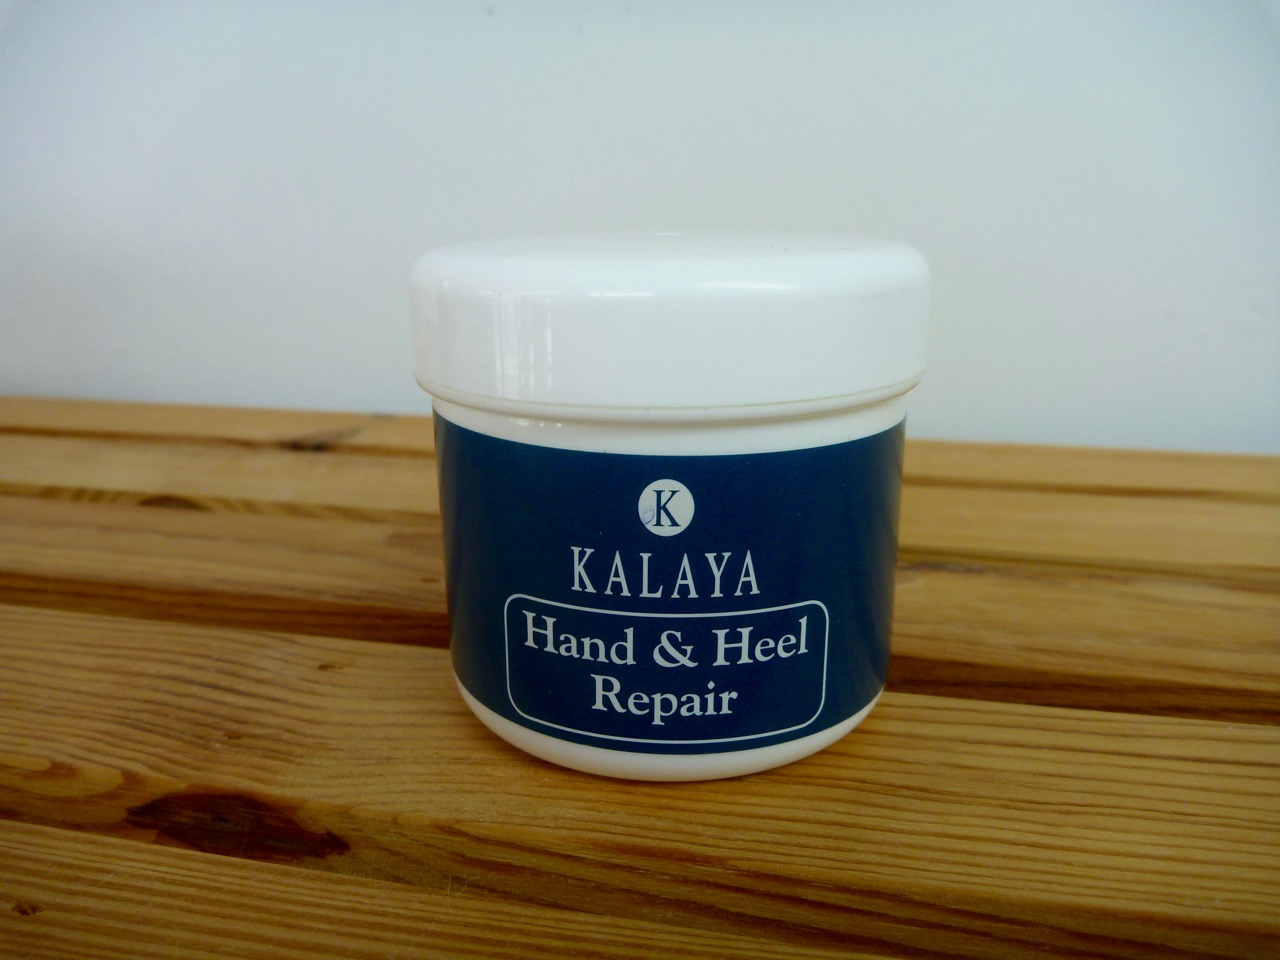 KALAYA HAND AND HEEL REPAIR